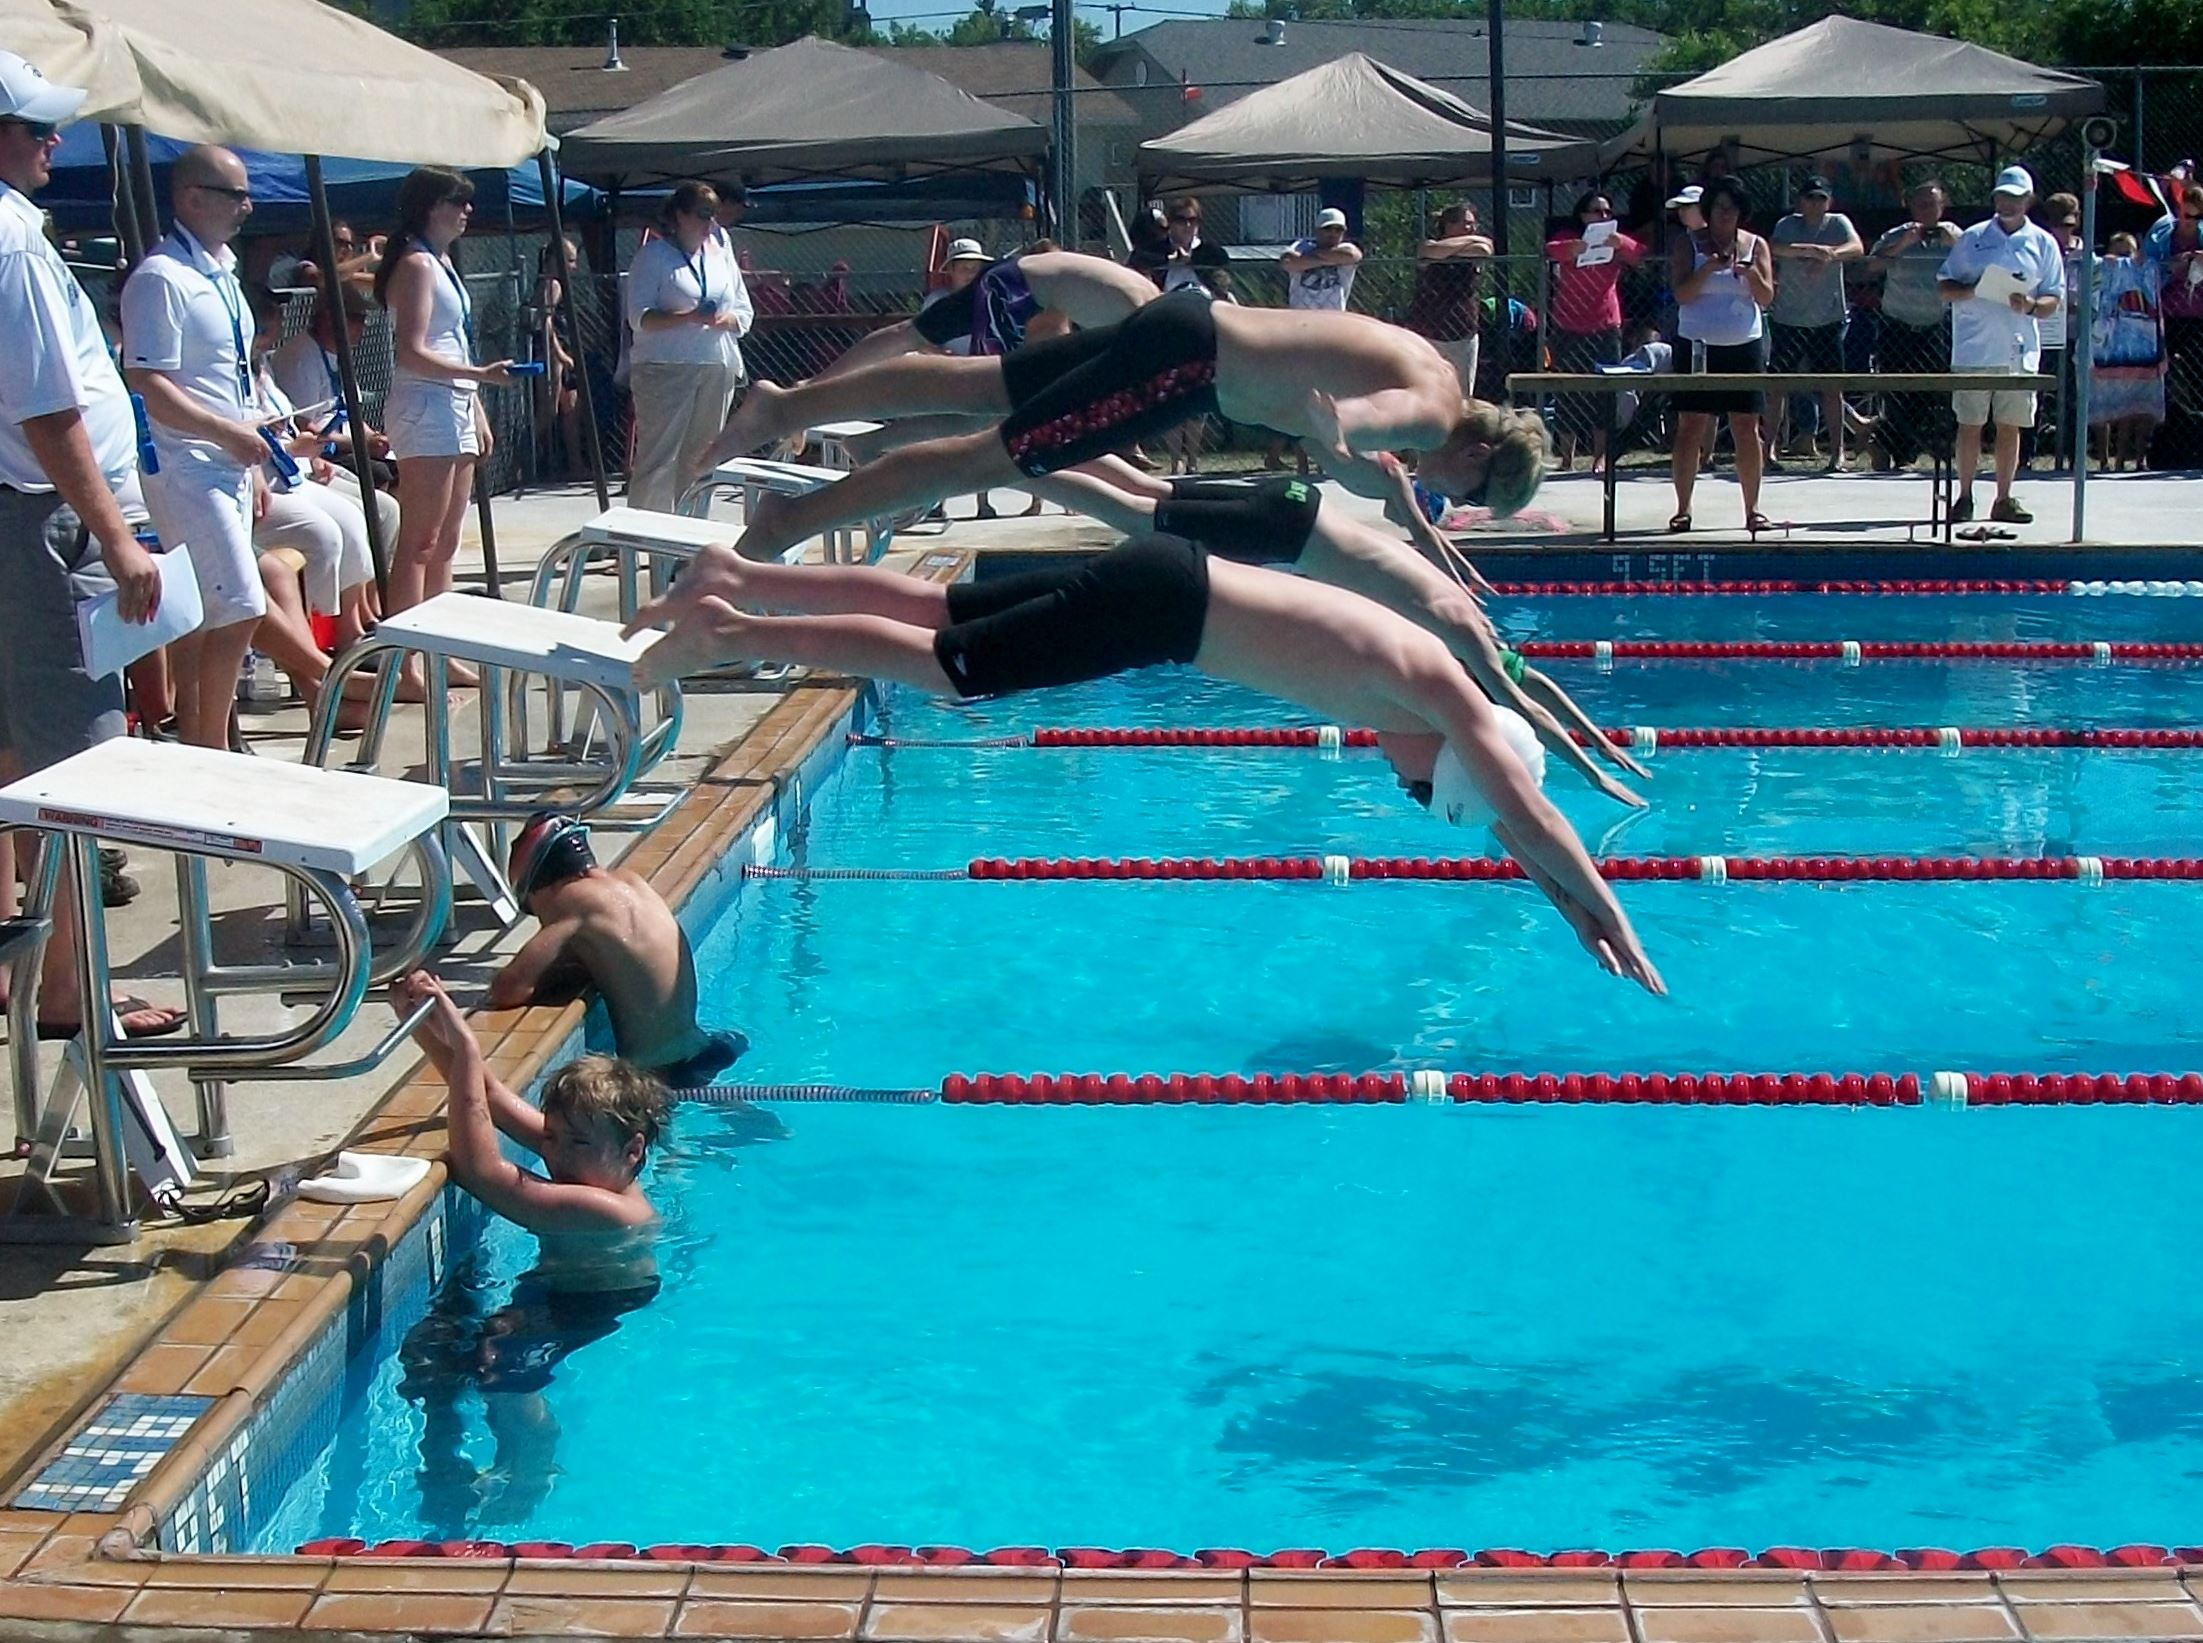 Athletes diving in the pool